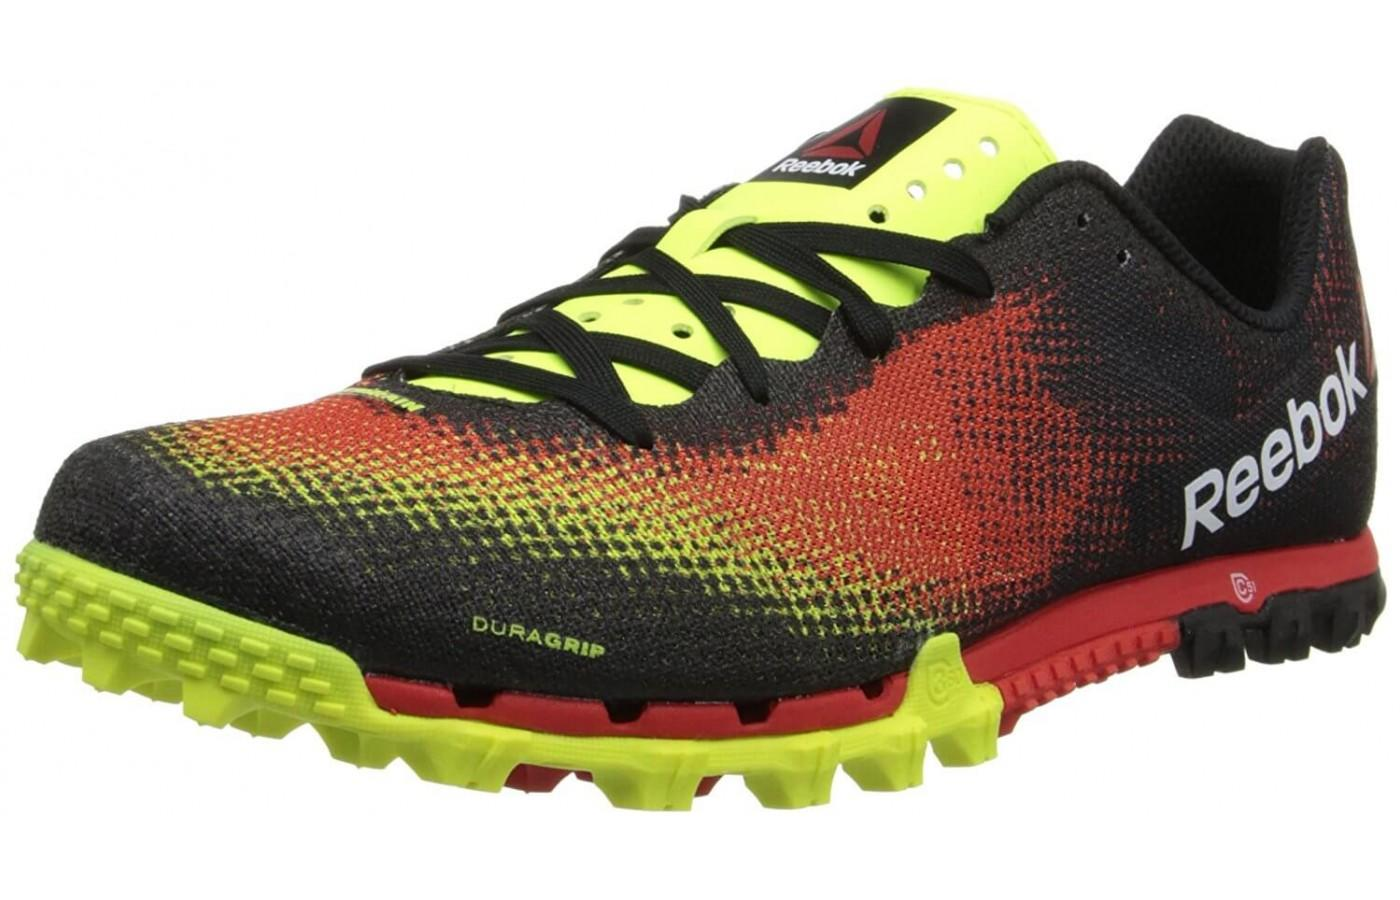 The Reebok All Terrain Sprint shown from the front/side.